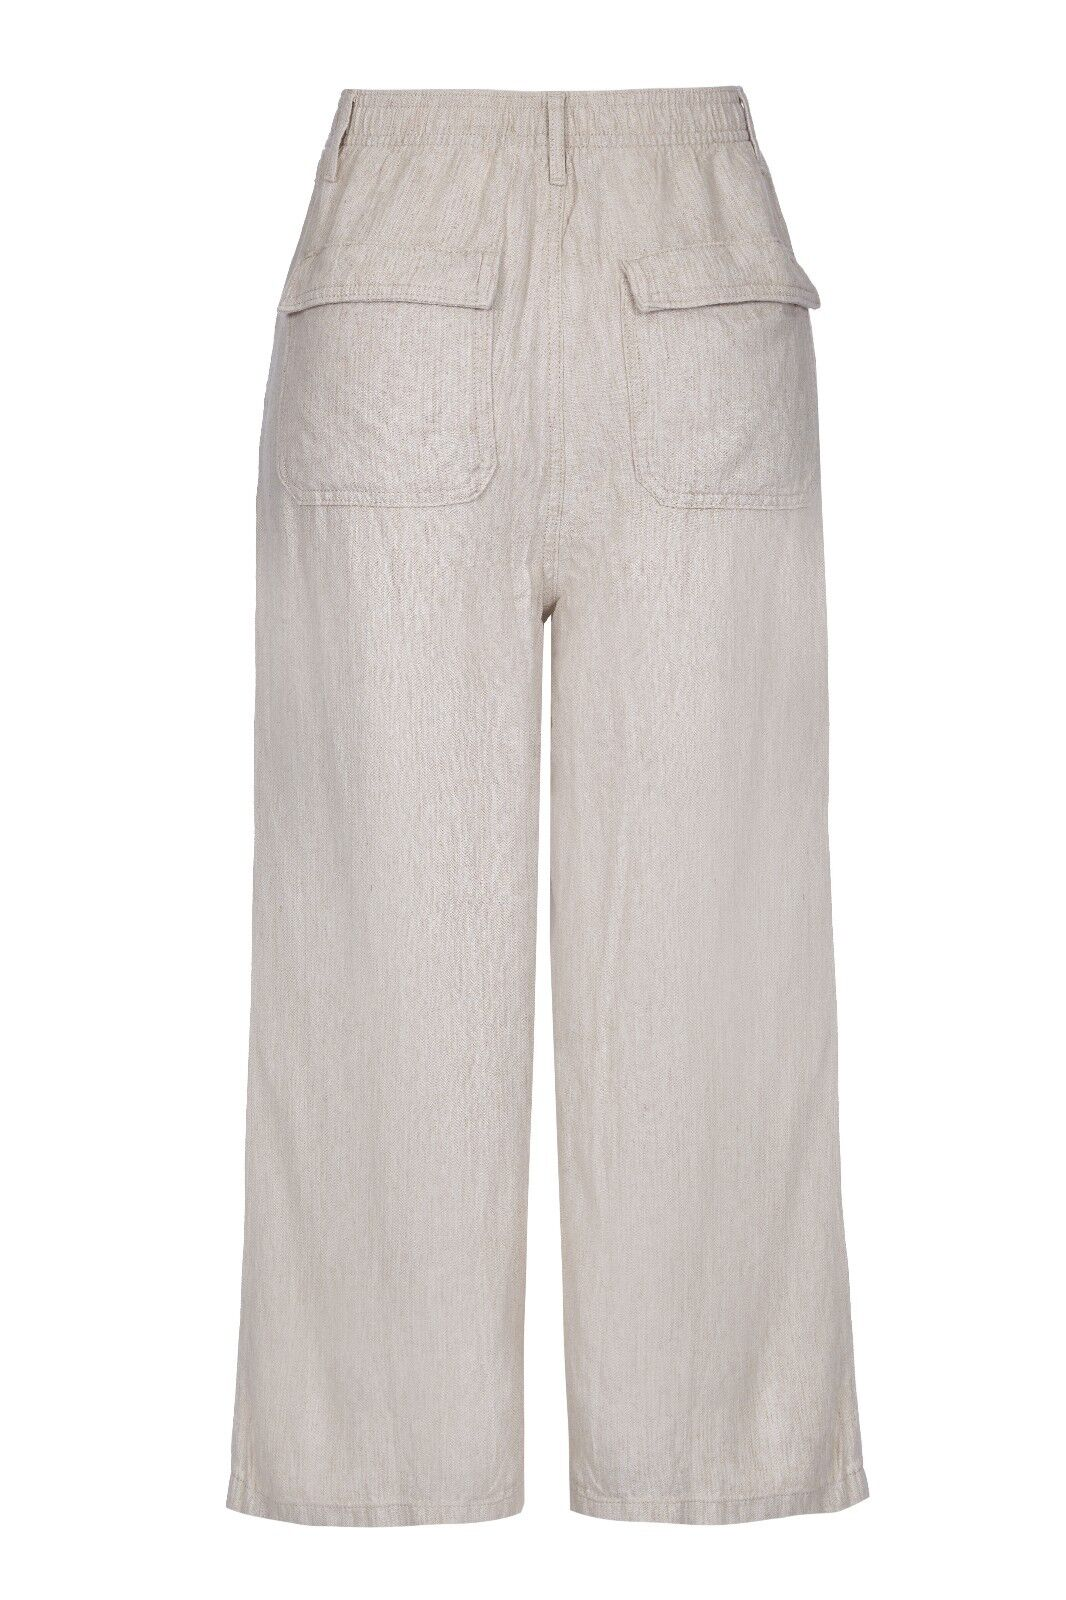 W2.6 Ex M*S Linen Blend Pleated Cropped Culottes in Grey and Denim